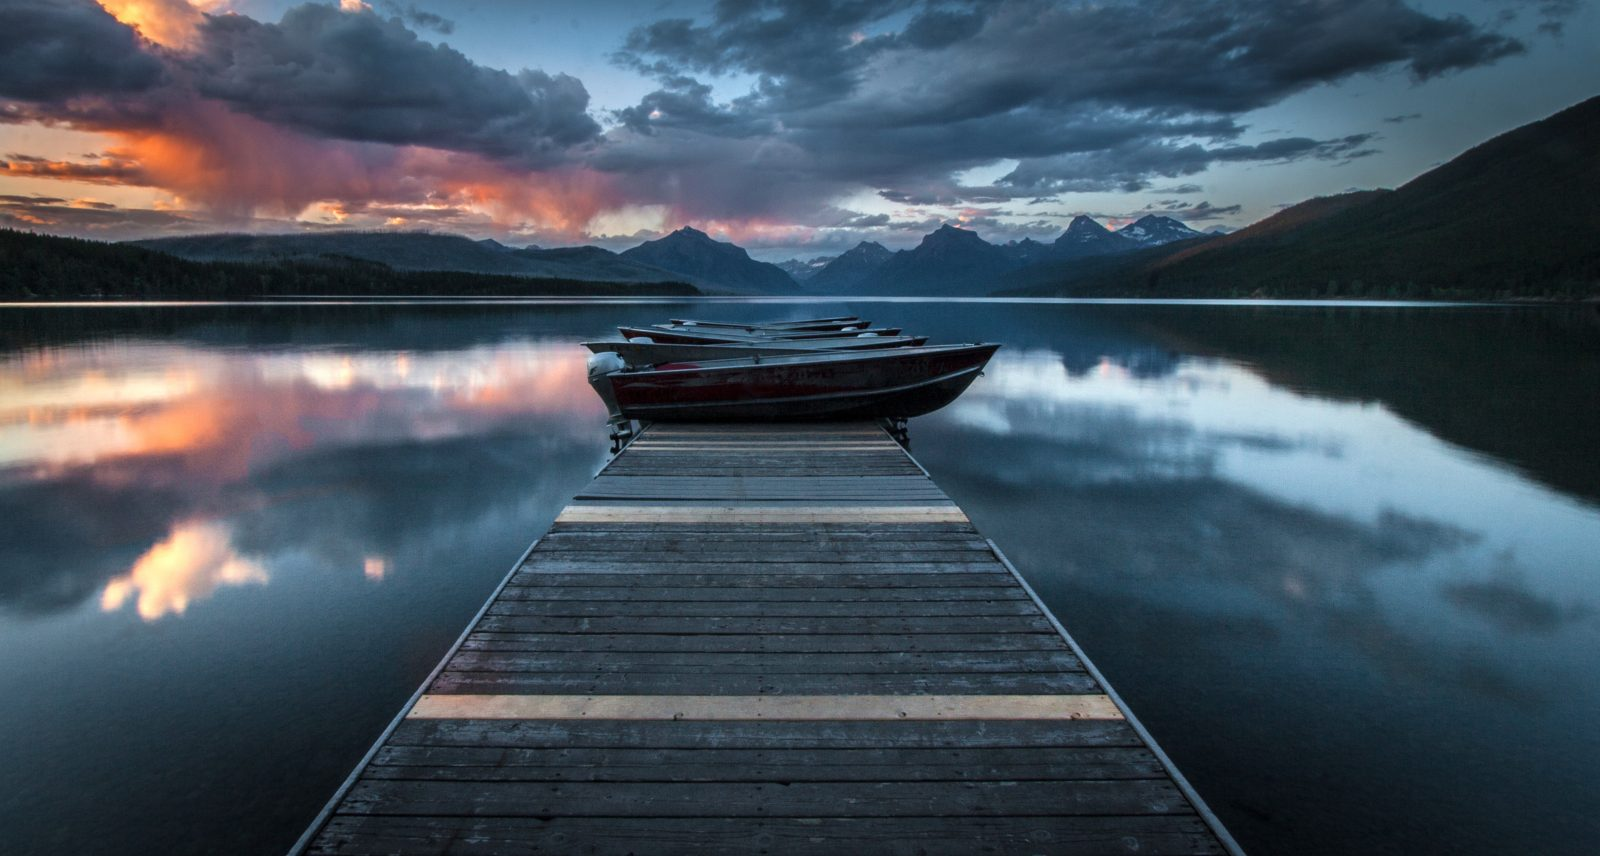 Sunset on Lake McDonald